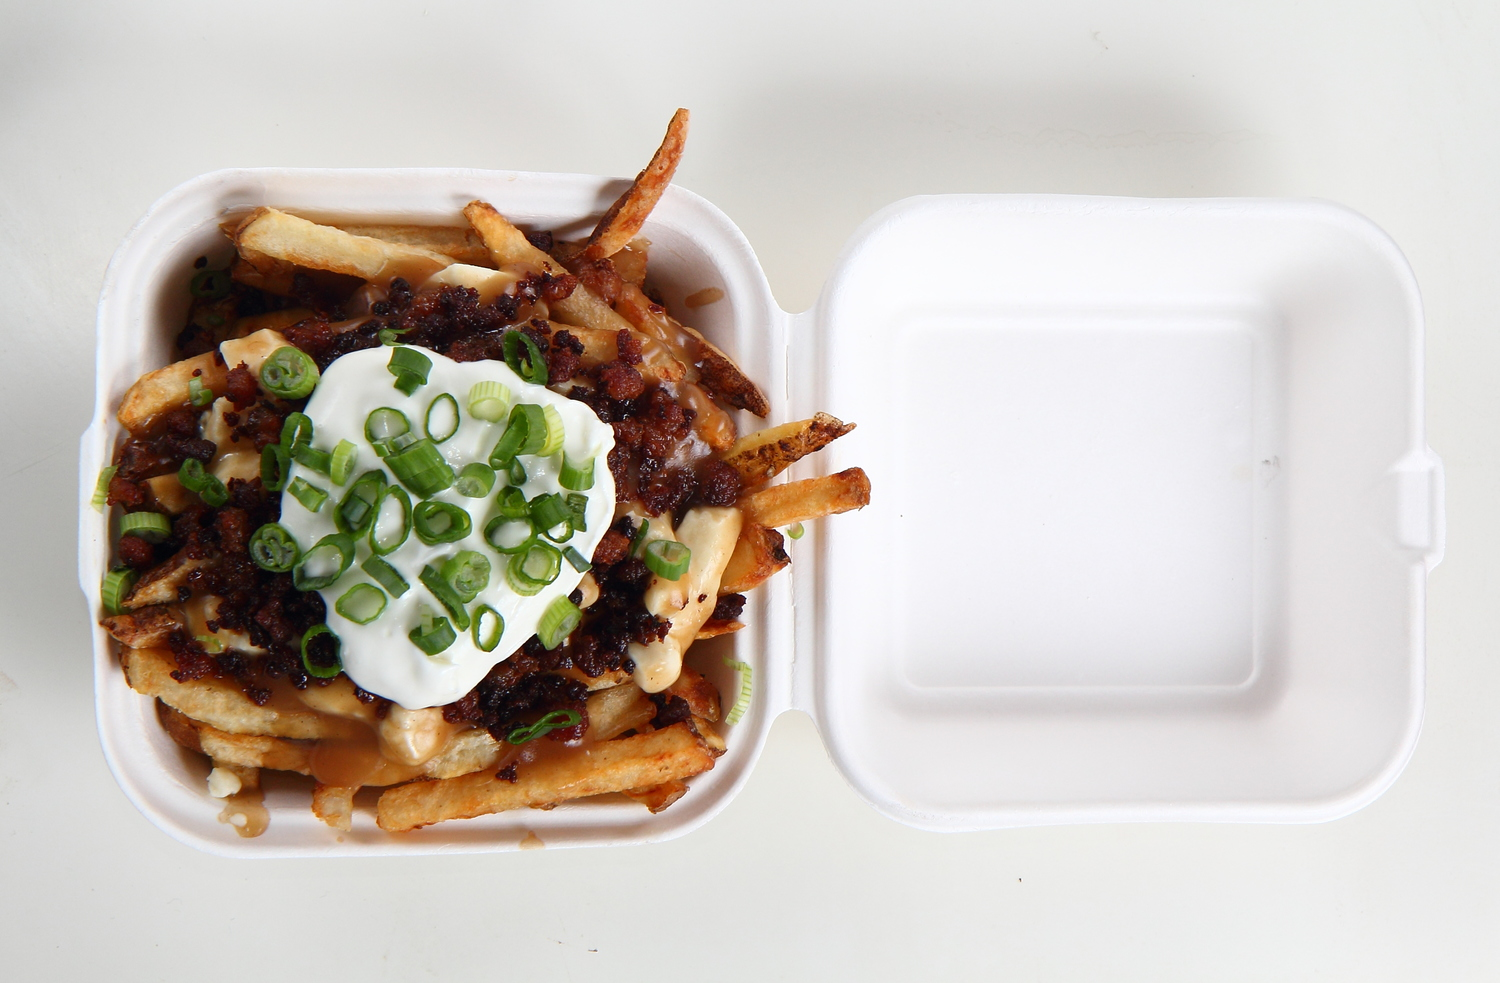 Welcome to La Poutine!